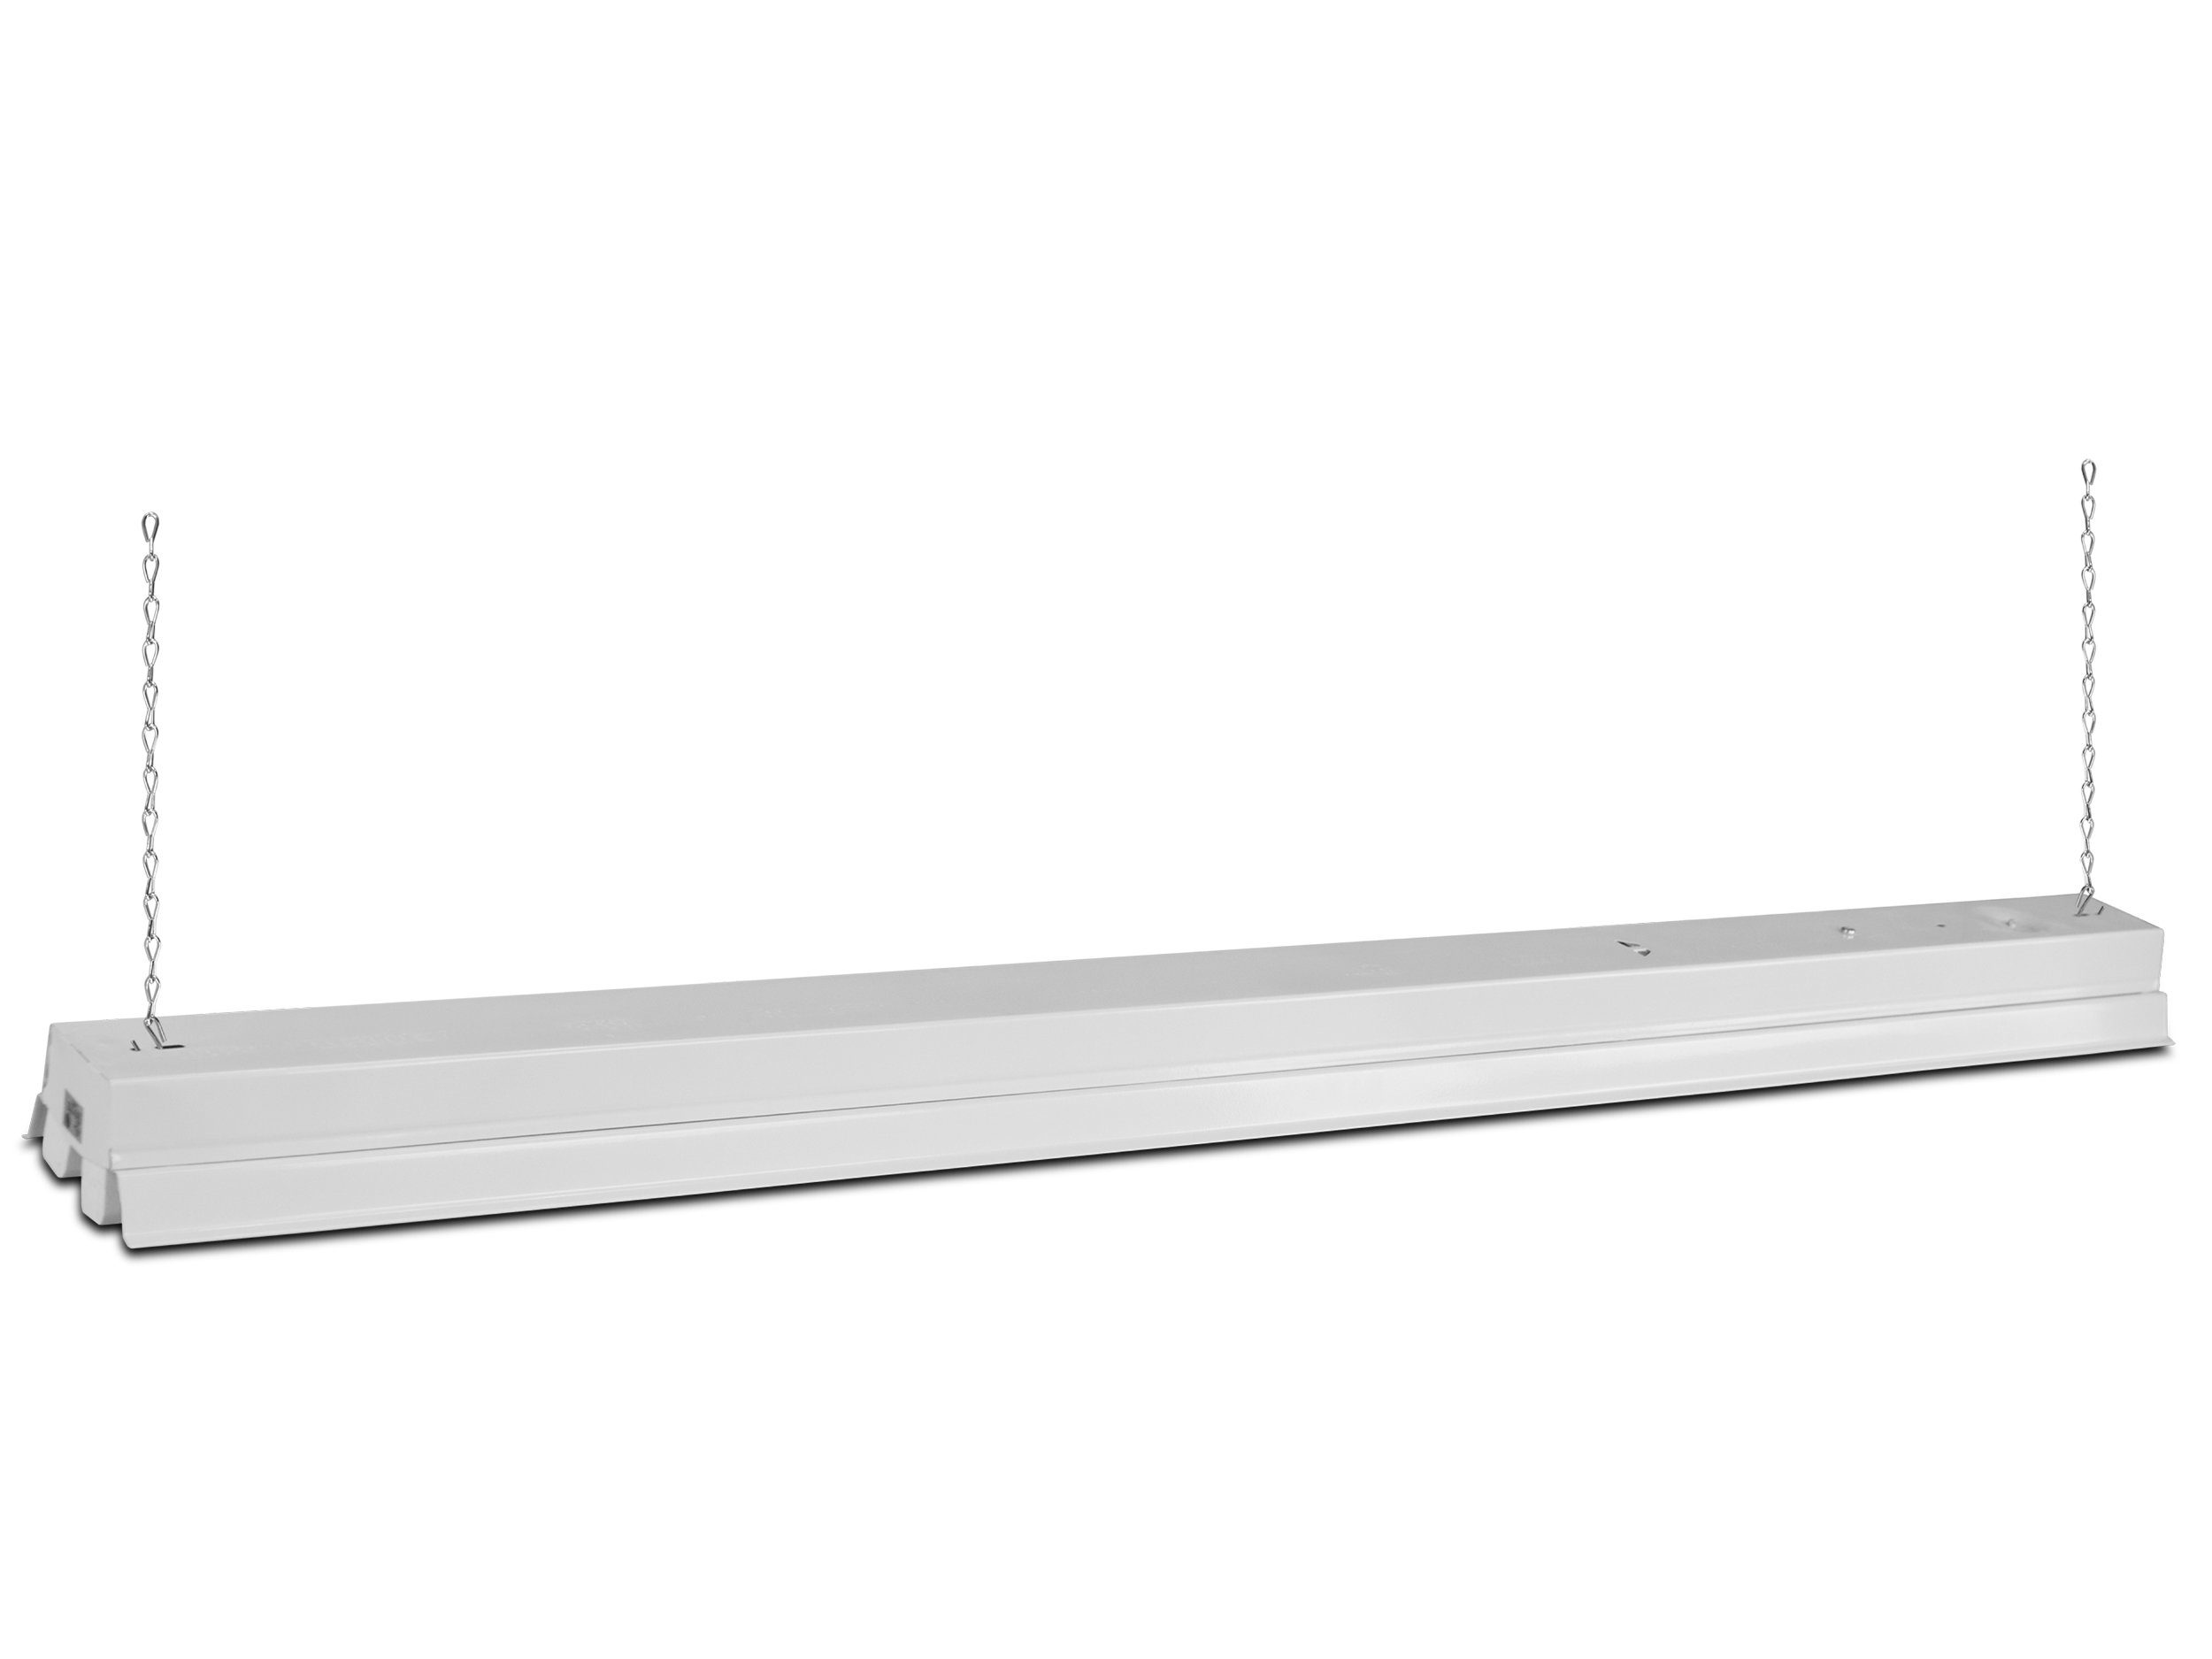 Howard Lighting FSL4W 4' Fluorescent Shop Light, White